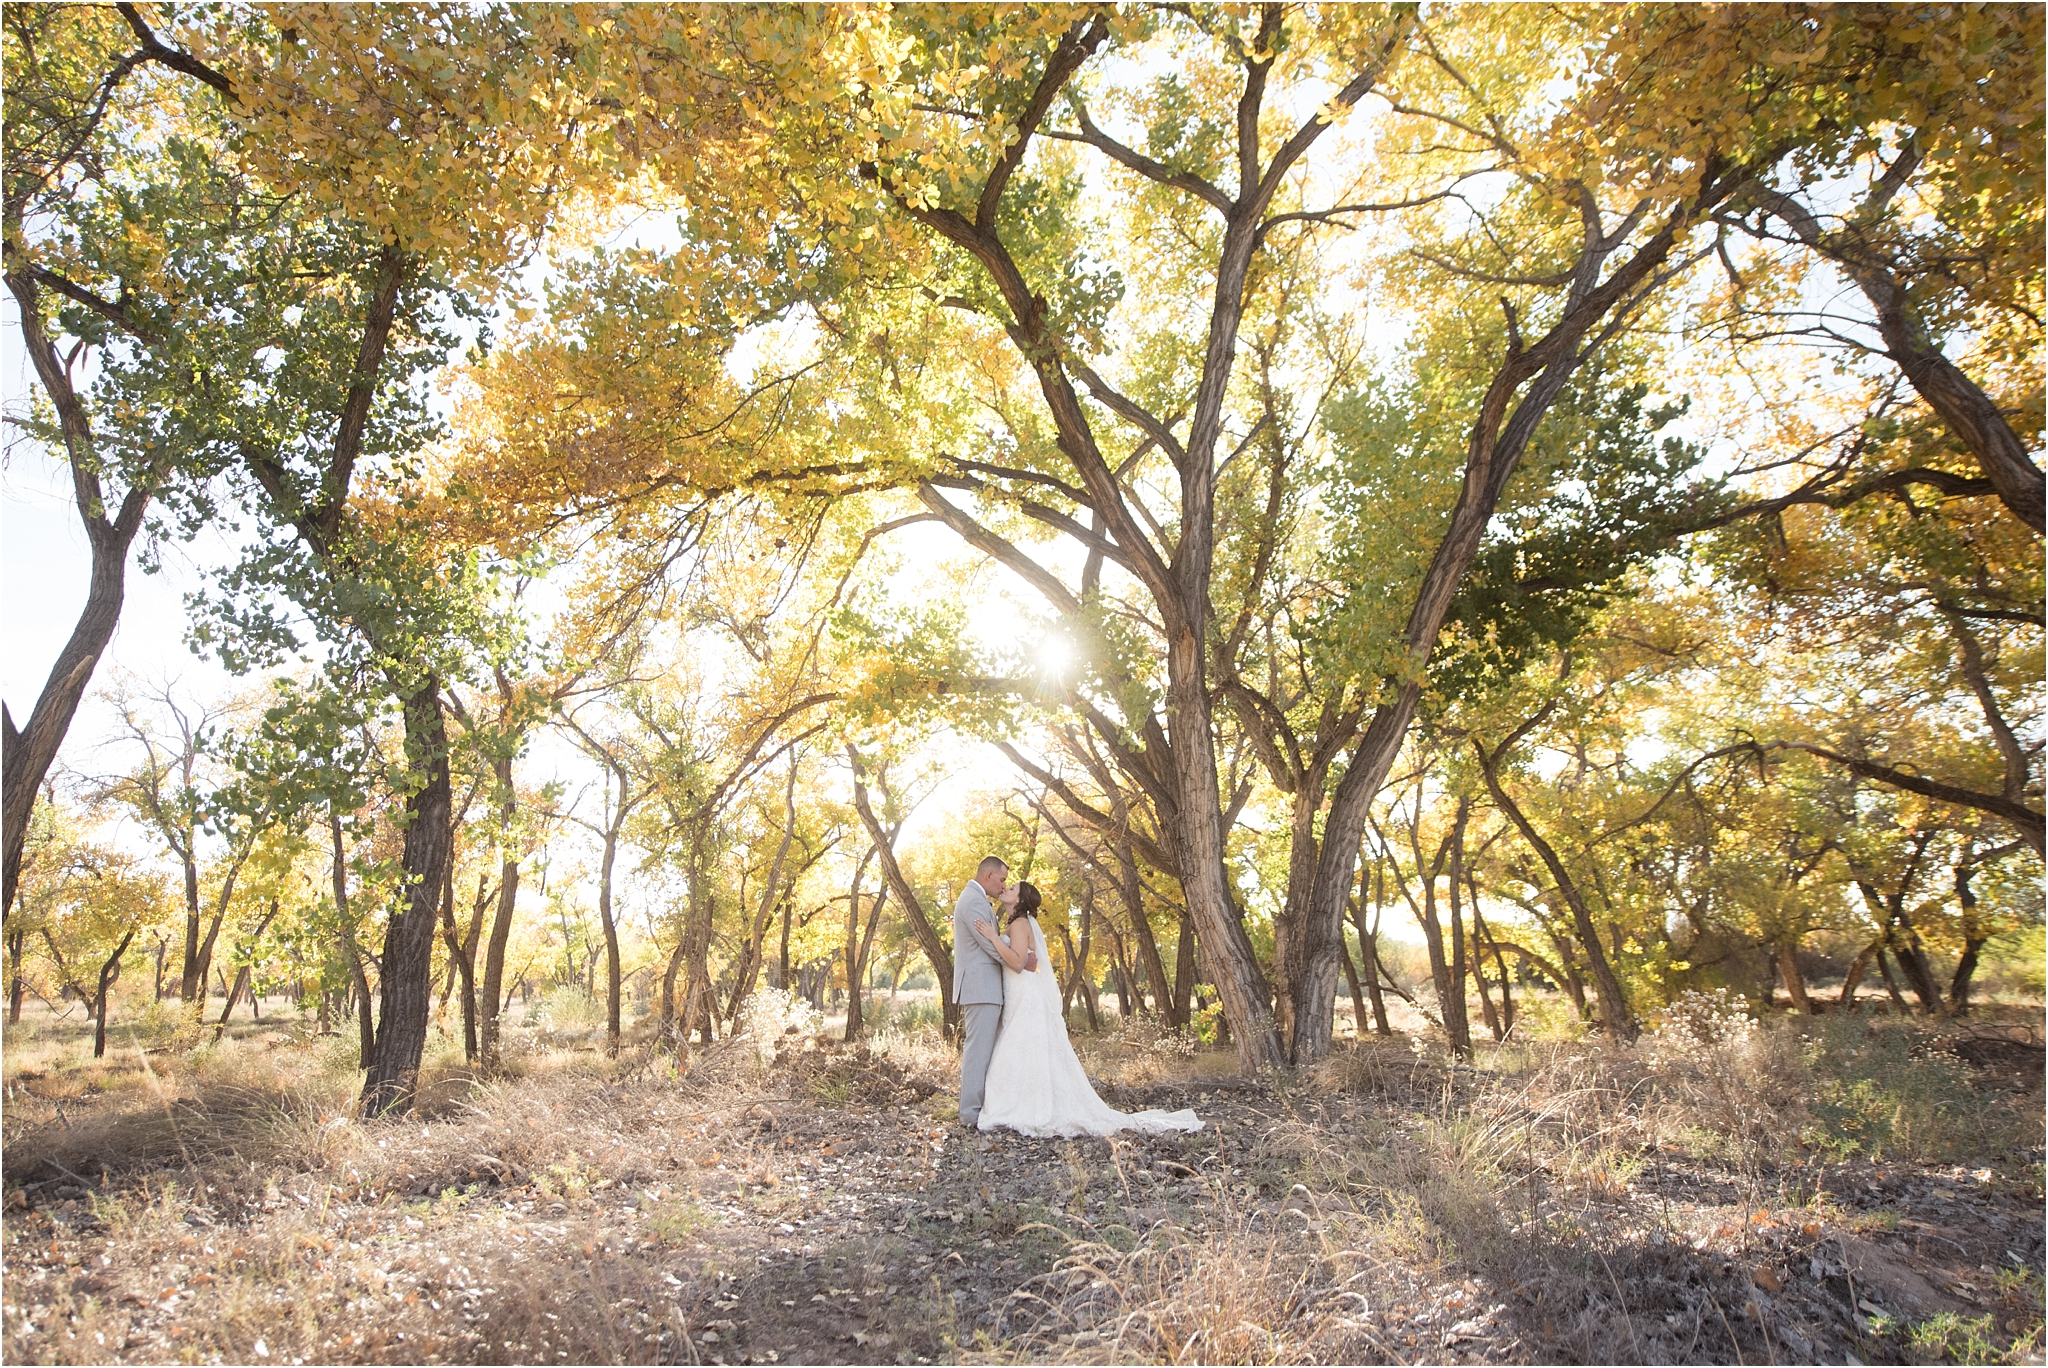 kayla kitts photography - albuquerque wedding photographer - hairpins and scissors - a cake odyssey - new mexico wedding photographer_0053.jpg